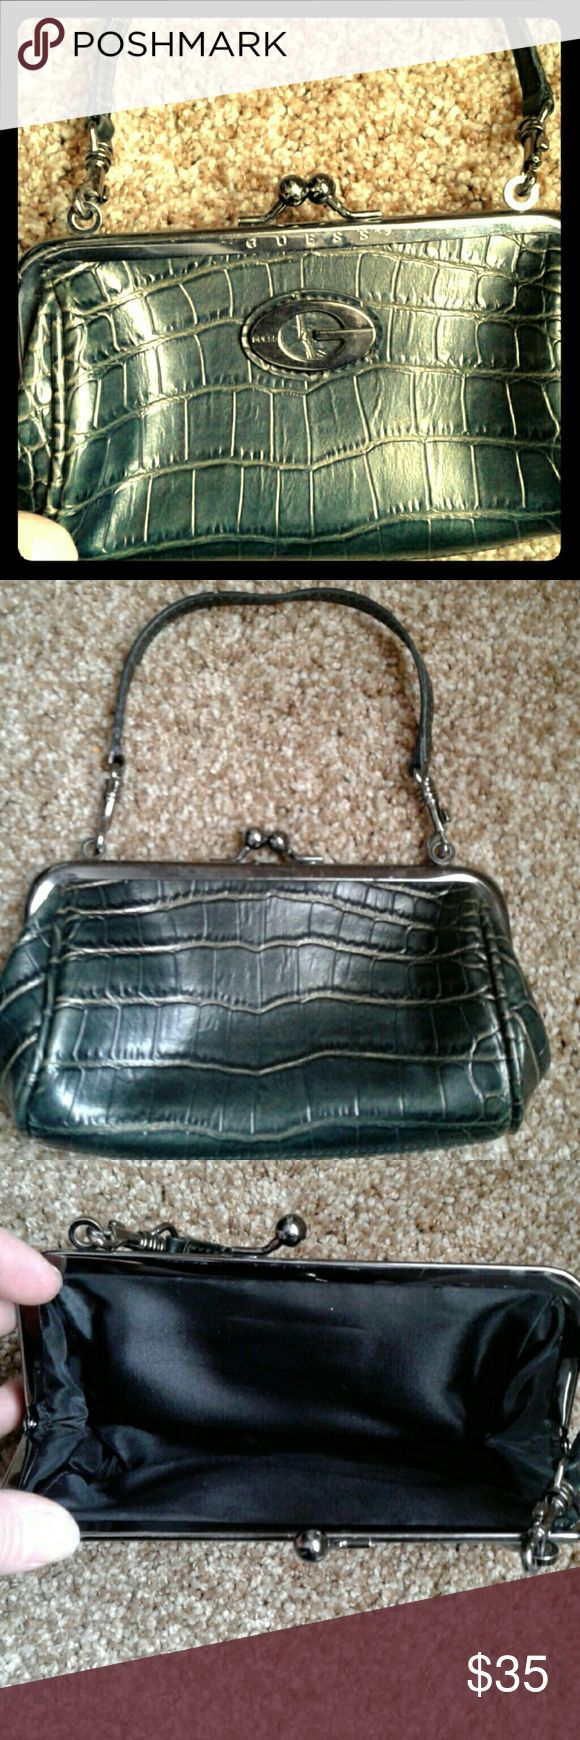 Guess clutch Genuine leather, brand new never used, very stylish, would look great on a night out in the city or just a casual dinner. Guess Bags Clutches & Wristlets